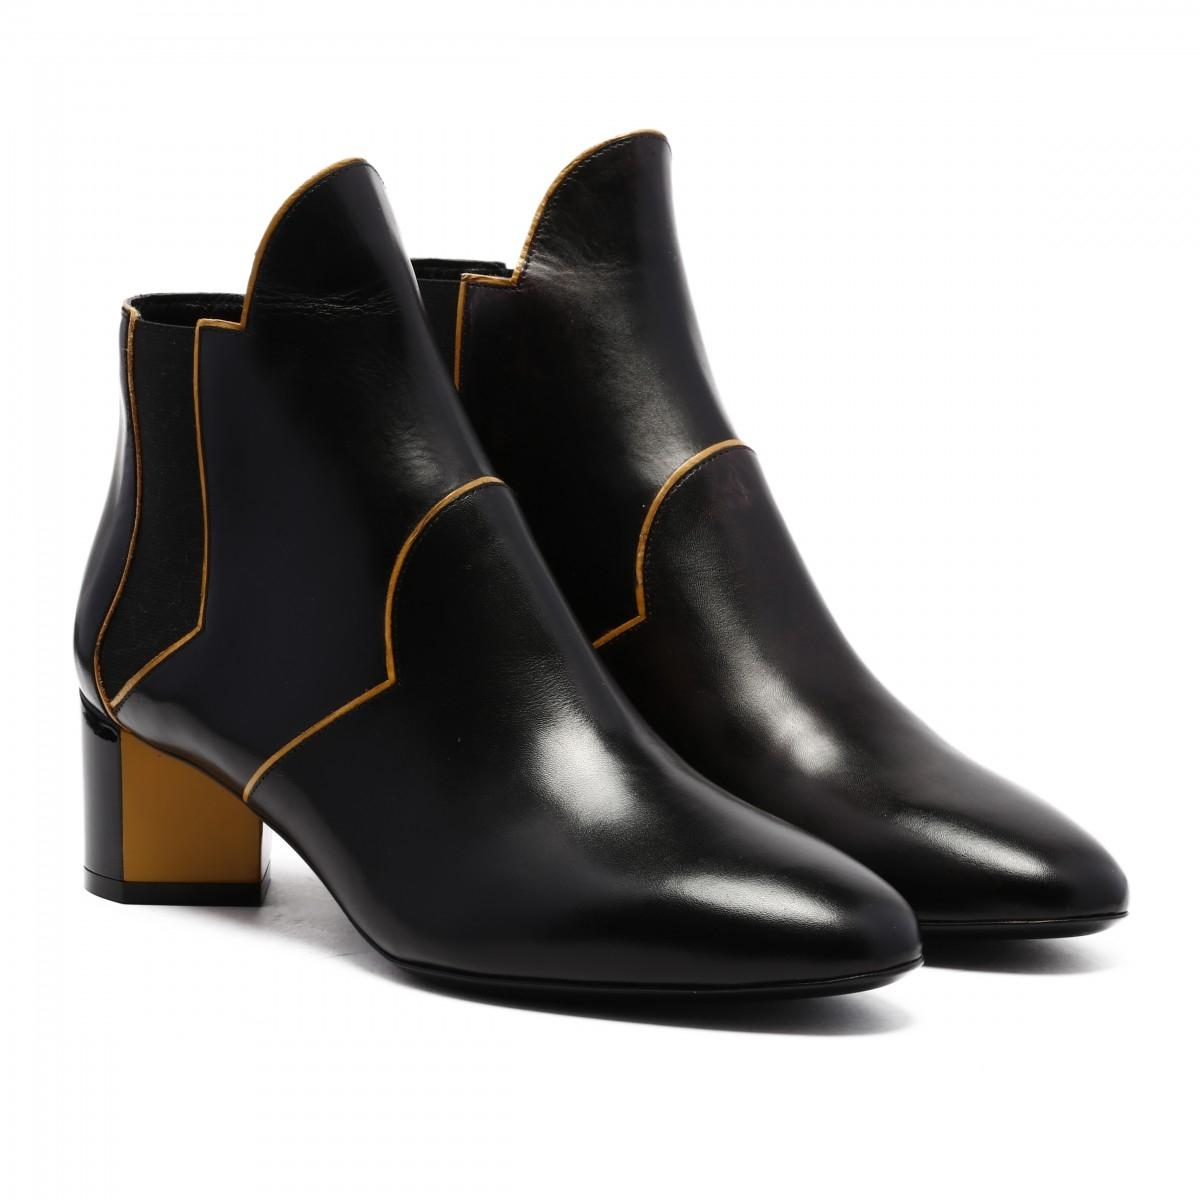 Pierre Hardy Patent Leather Boots Buy Cheap Clearance iT0AfQ